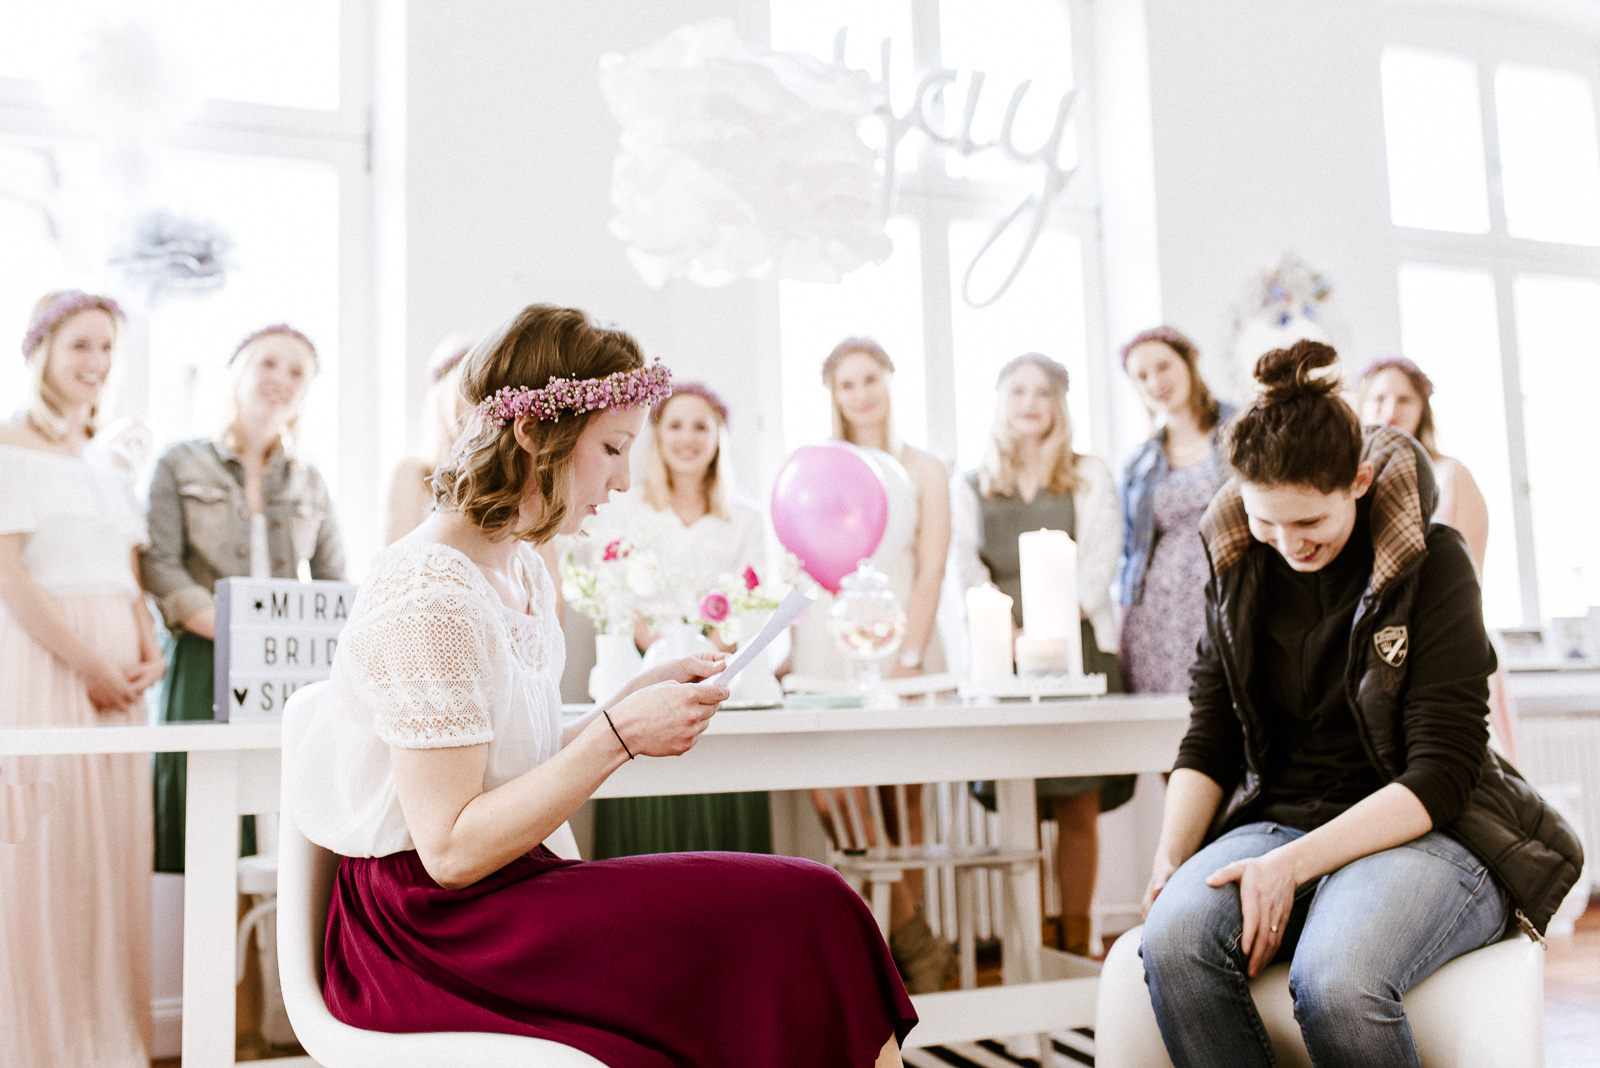 2016 - Bridal Showerlulugraphie-12